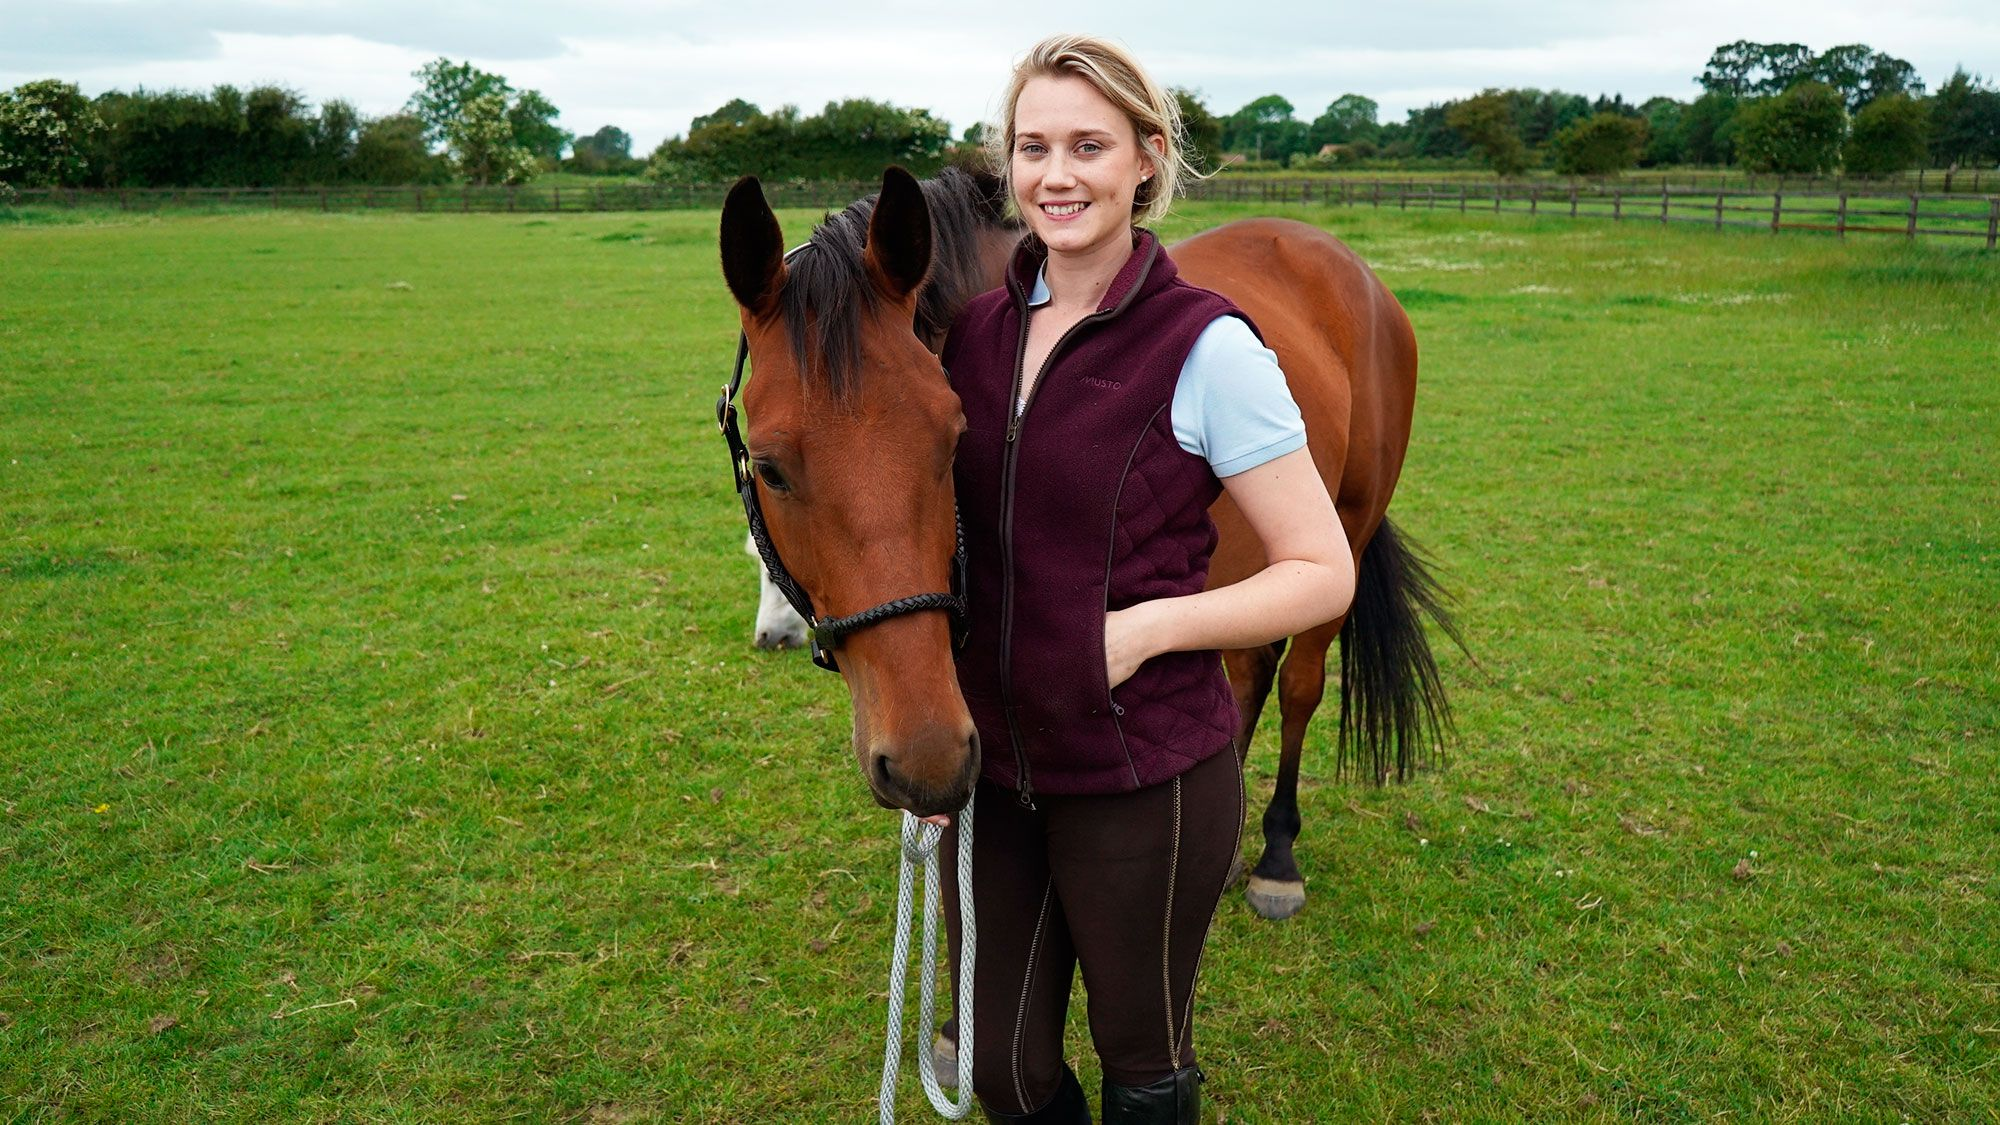 Dating for horse lovers